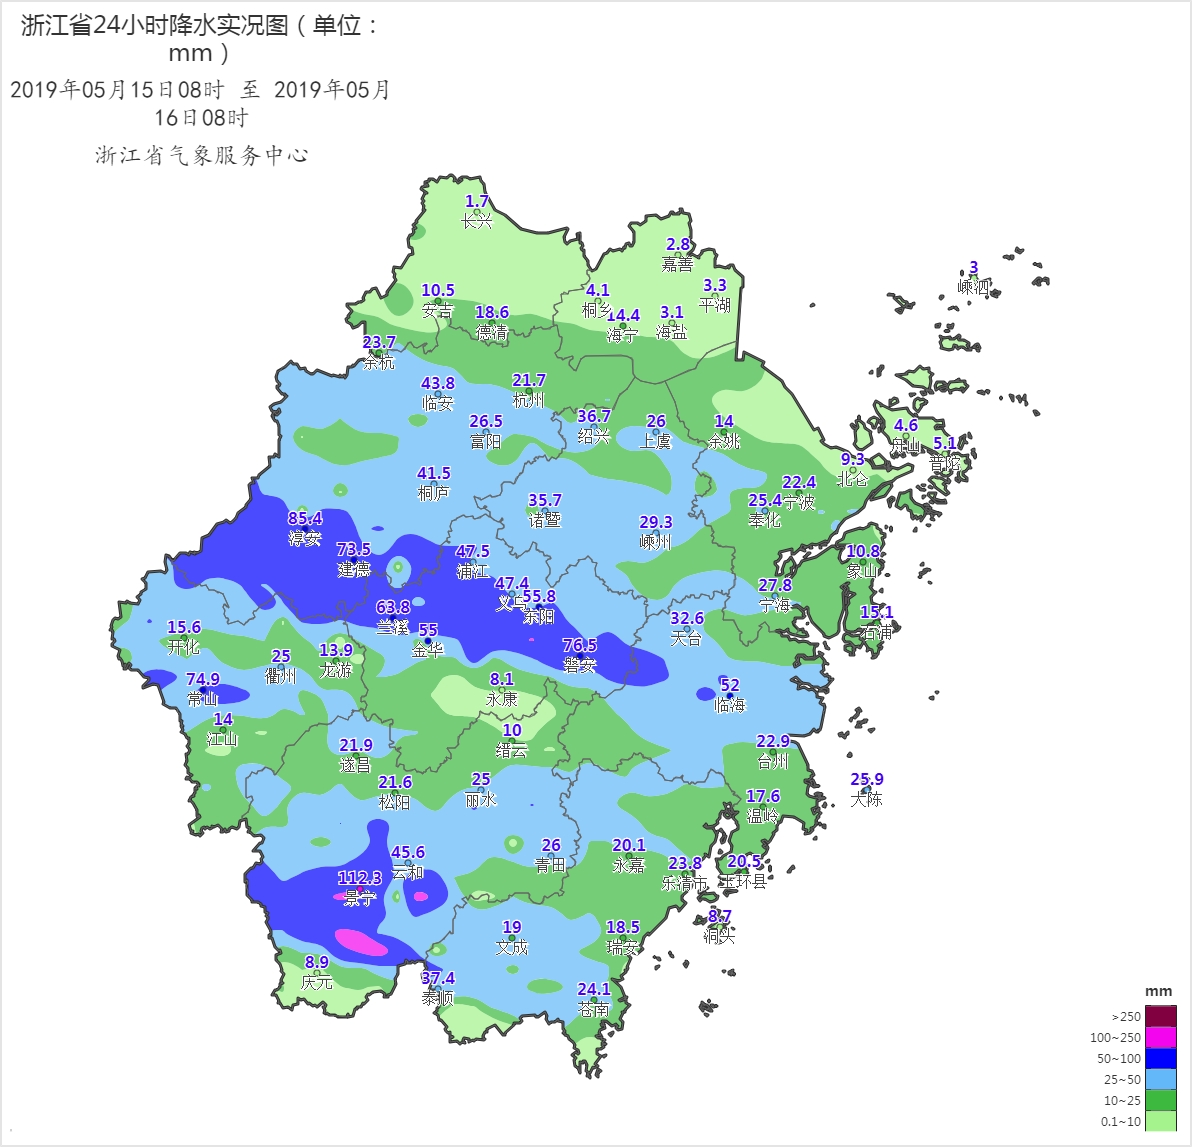 http://i.weather.com.cn/images/zhejiang1/tqyw/2019/05/16/1557989899846043359.png